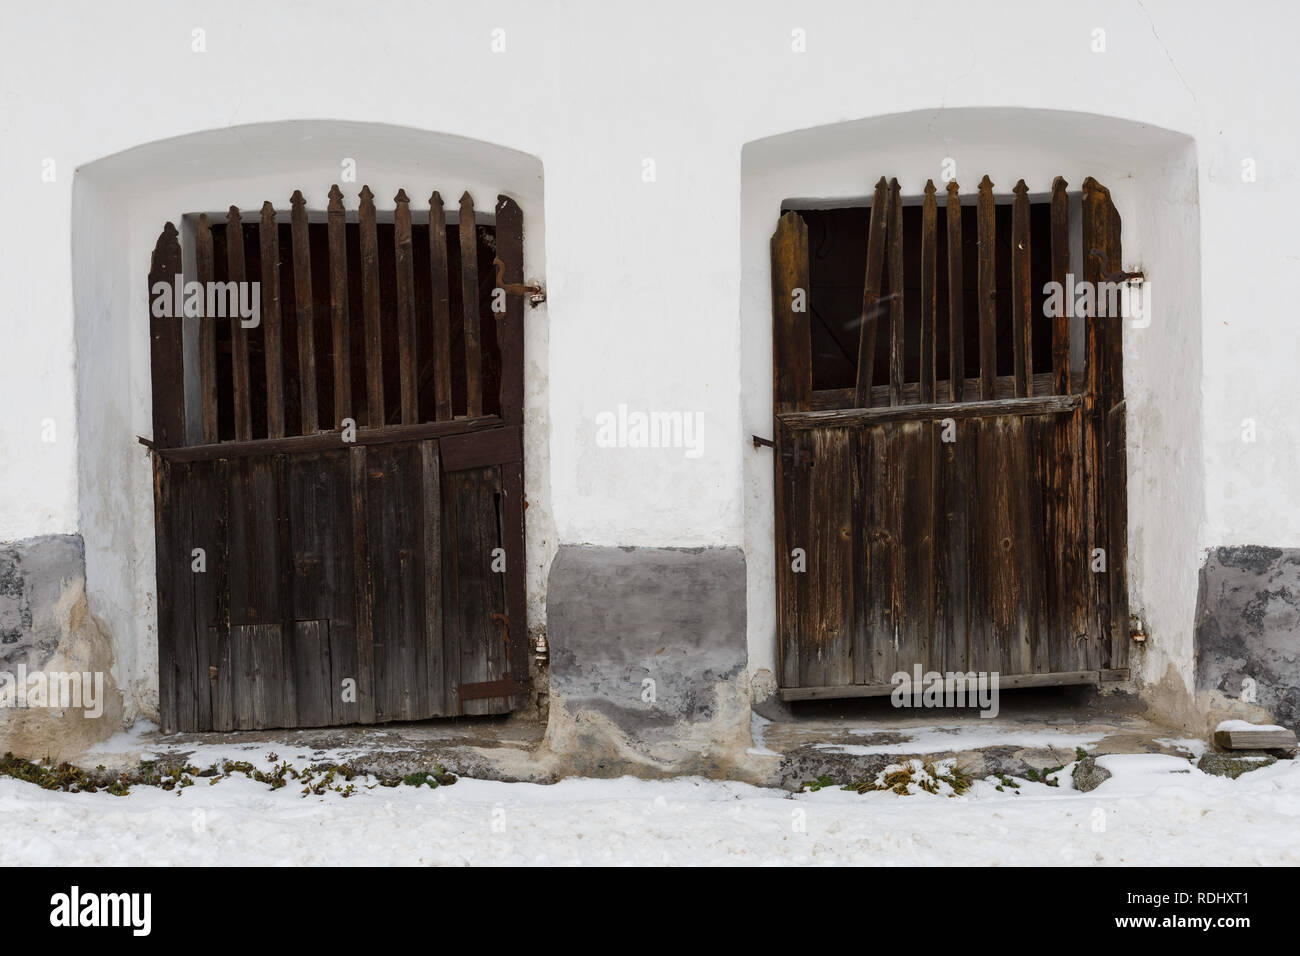 Doors of a traditional granary in Karlova village, northern Slovakia. - Stock Image